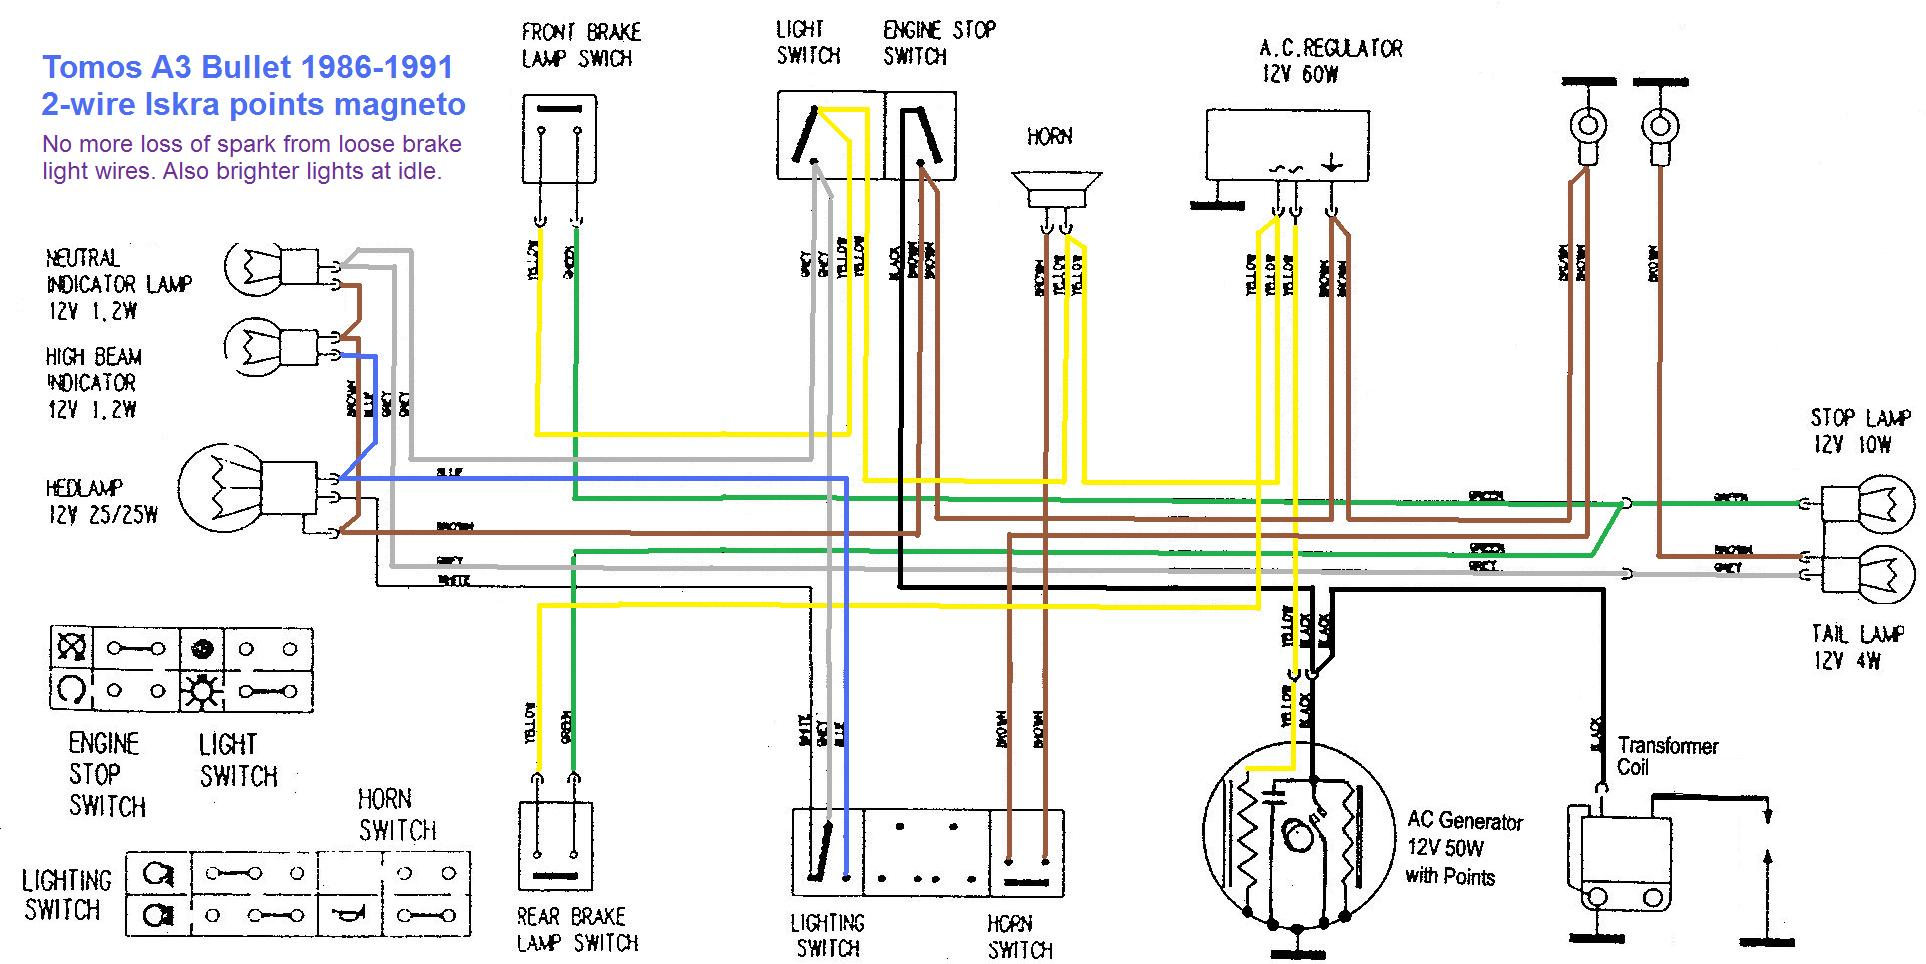 Tomos A3 Wiring Diagram moreover Tomos Wiring Diagram besides Tomos Frame Swing Arm Seats Parts 5 Subcategories c 200 as well Tomos Front Wheels Parts 6 Subcategories c 199 besides Puch Maxi Wiring Diagram. on tomos a3 wiring diagram